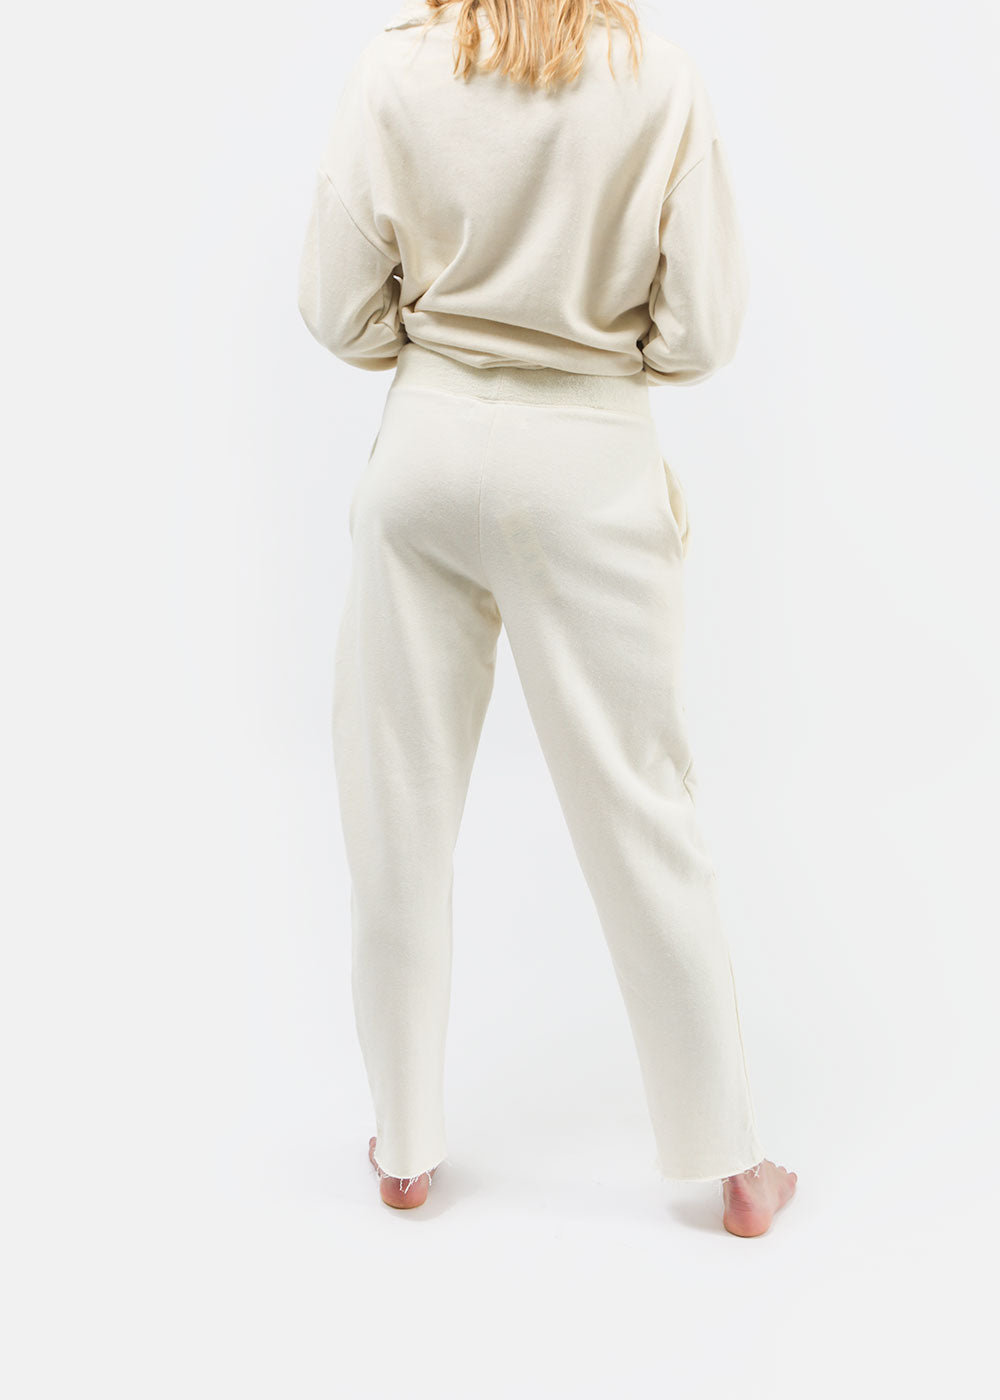 Open Air Museum Textured Sweatpant — New Classics Studios